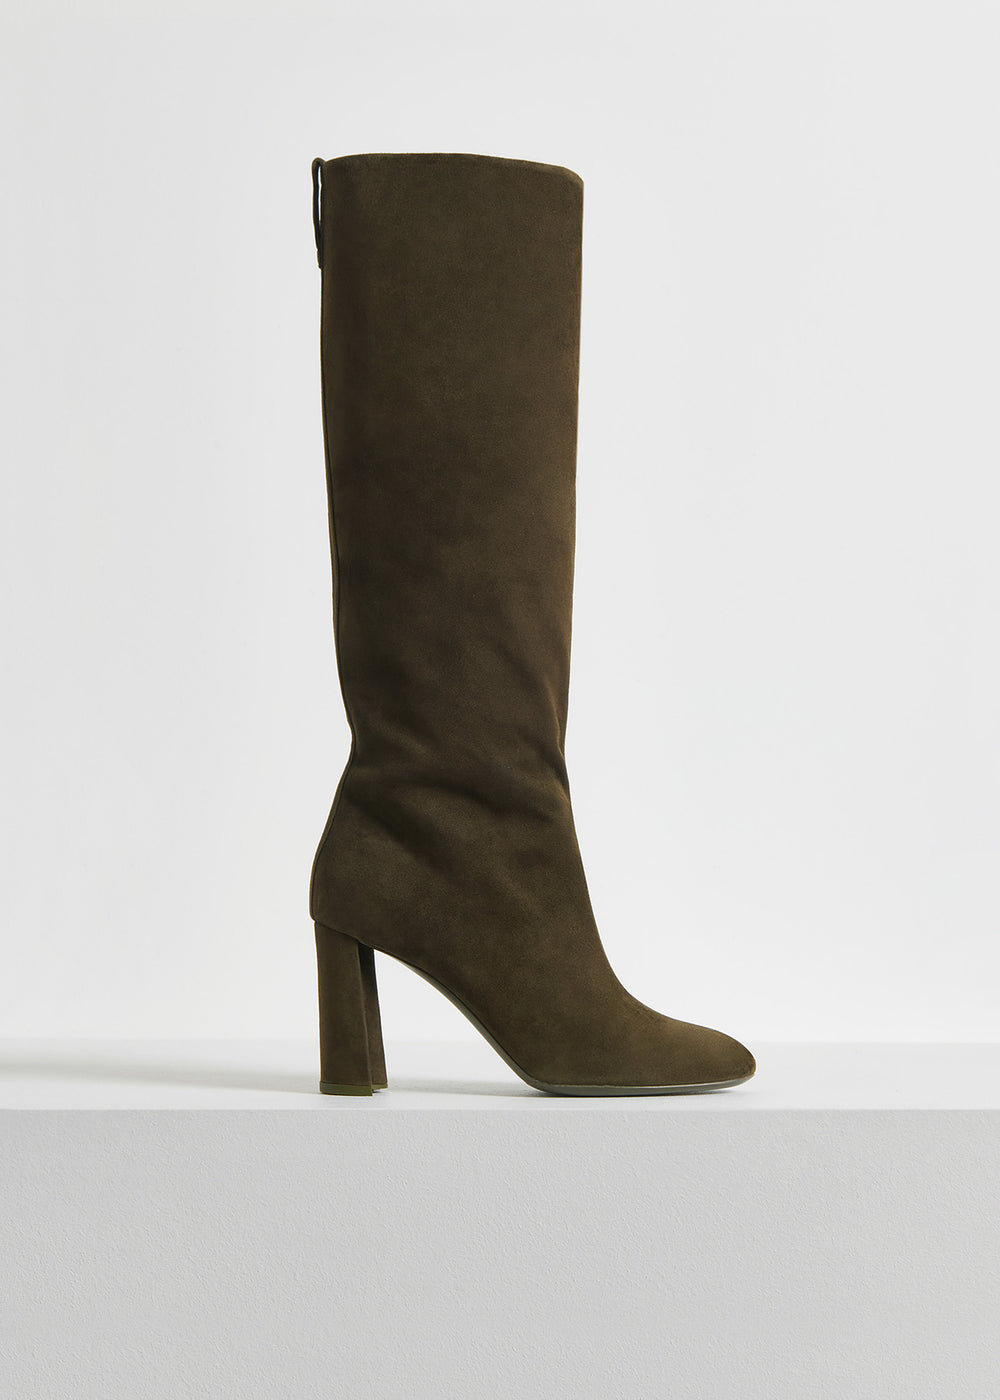 Tall Boot in Suede - Black in Taupe Special  by Co Collections